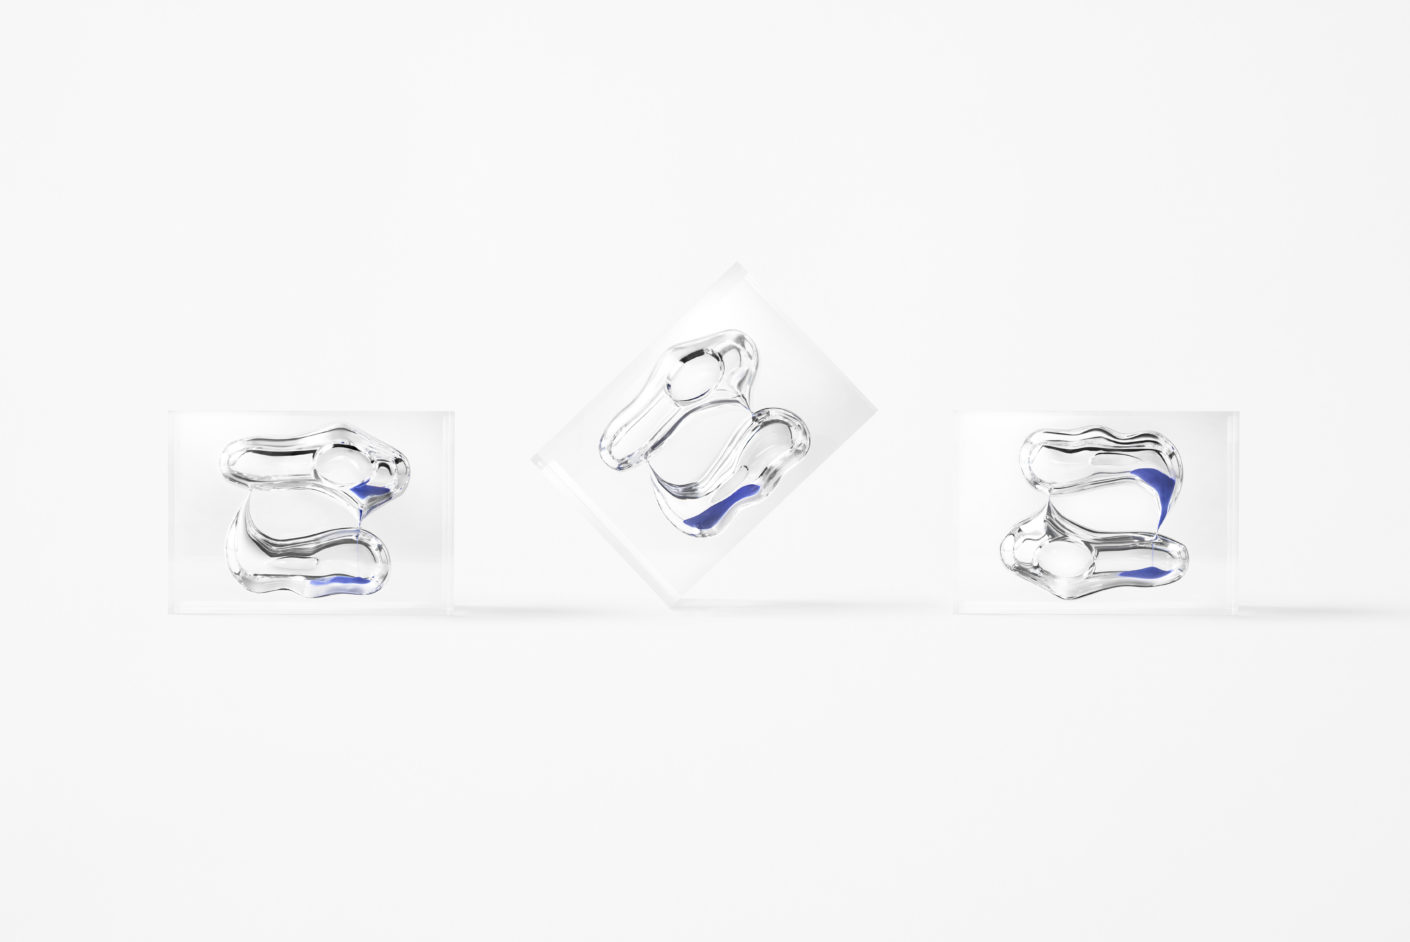 Salone del Mobile, Nendo, Variations Of Time, Stylepark